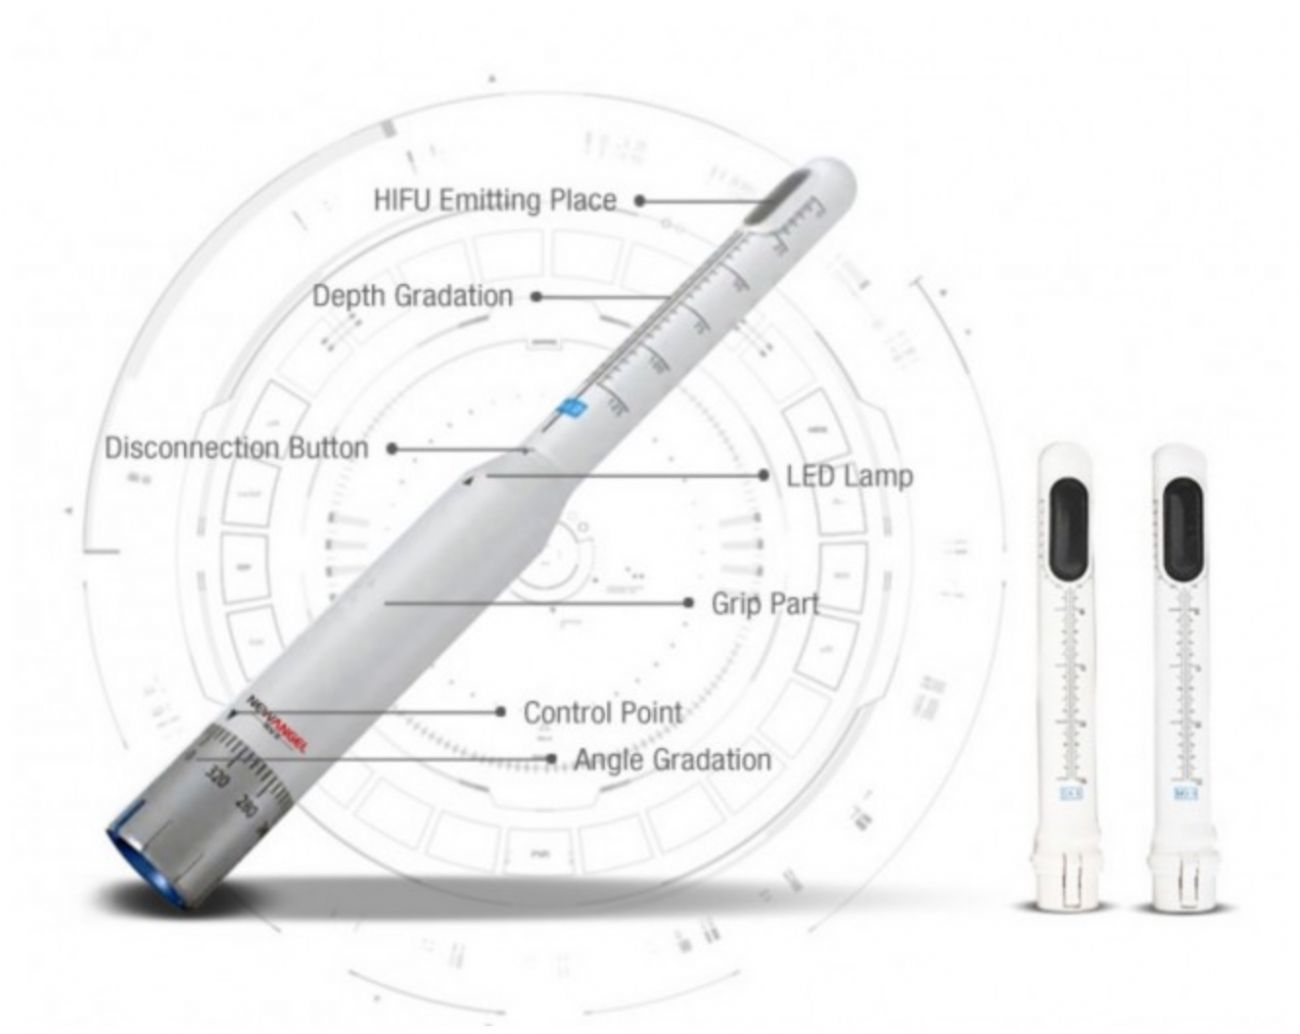 Hi-fu 2in 1<br />- 2 handpieces ( 1 face - 1 vaginal)<br />- Face Cartridges: 1.5mm / 3mm / 4.5mm / 8mm(Optional) / 13mm(Optional)<br />- Vaginal Cartridges: 3mm / 4.5mm<br />- Cartridges Life: 10,000 shots<br />- Maximum Power: 200 W